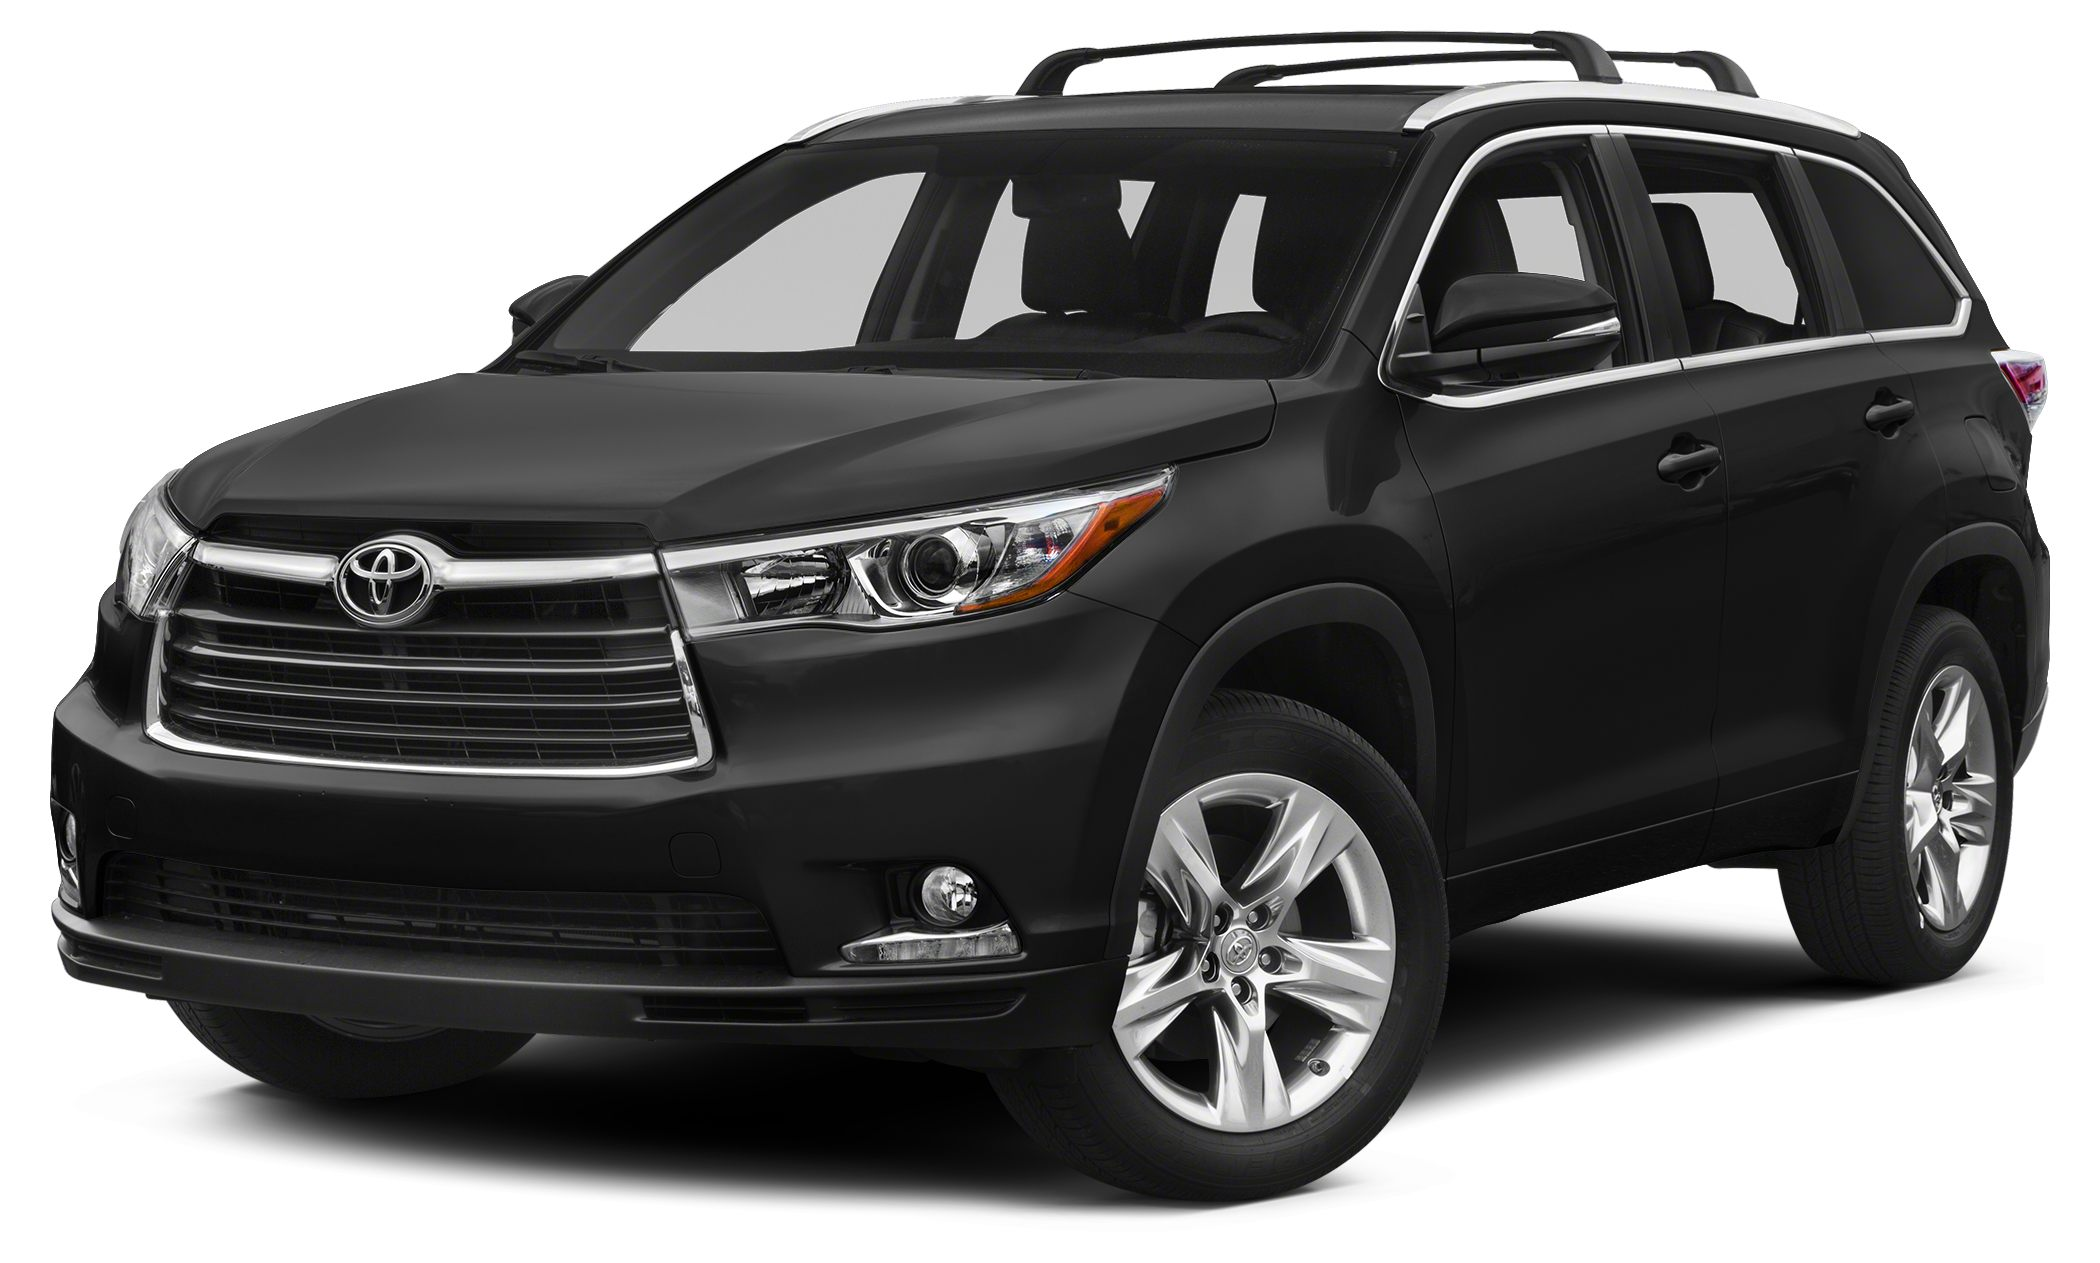 2014 Toyota Highlander Limited 1400 below Kelley Blue Book EPA 24 MPG Hwy18 MPG City CARFAX